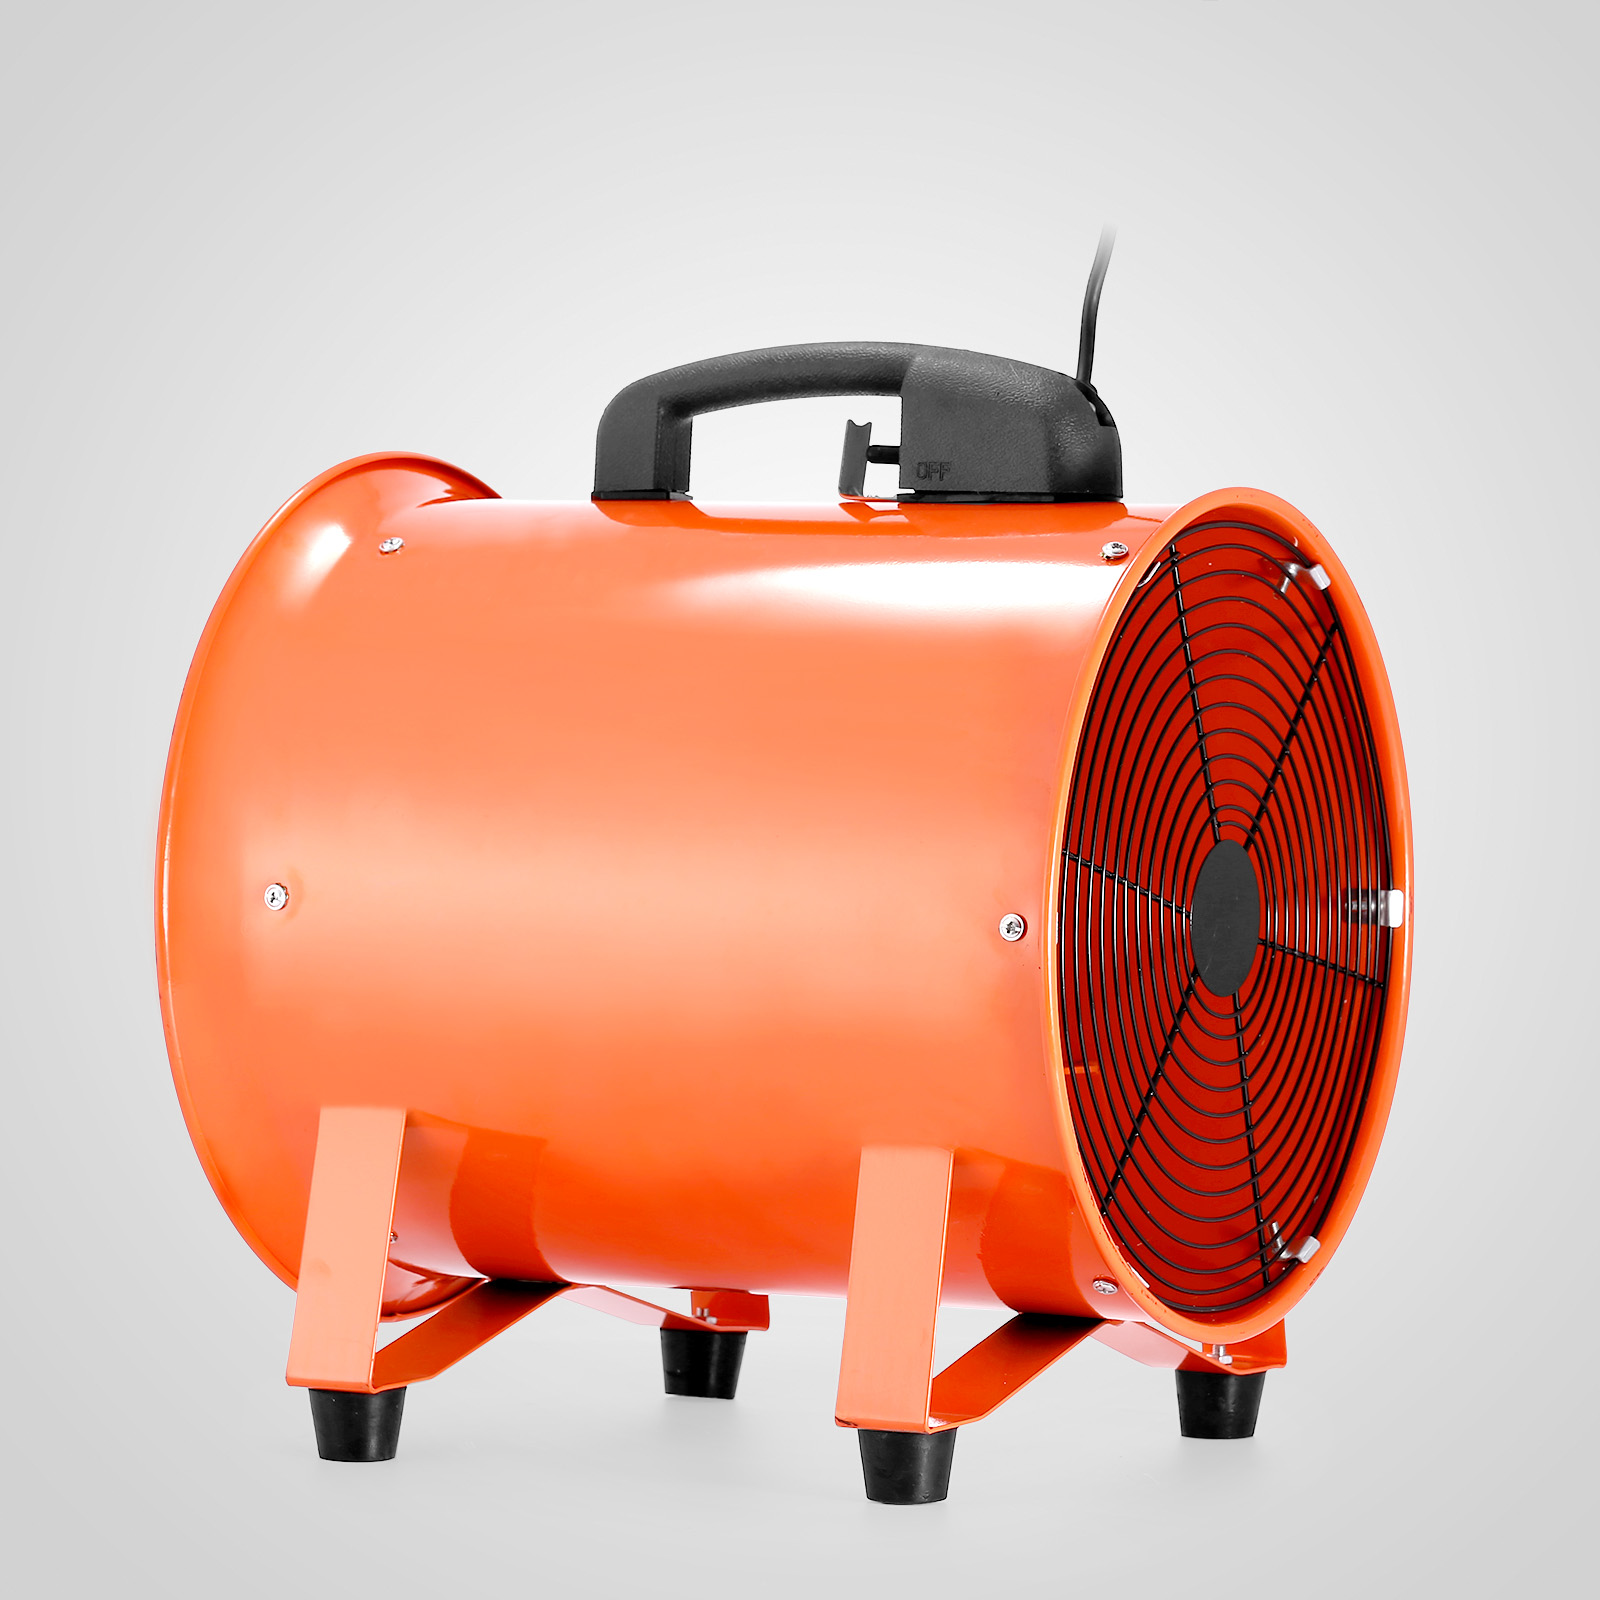 Extractor Fan Lab : Mm industrial fan ventilator fume extractor blower